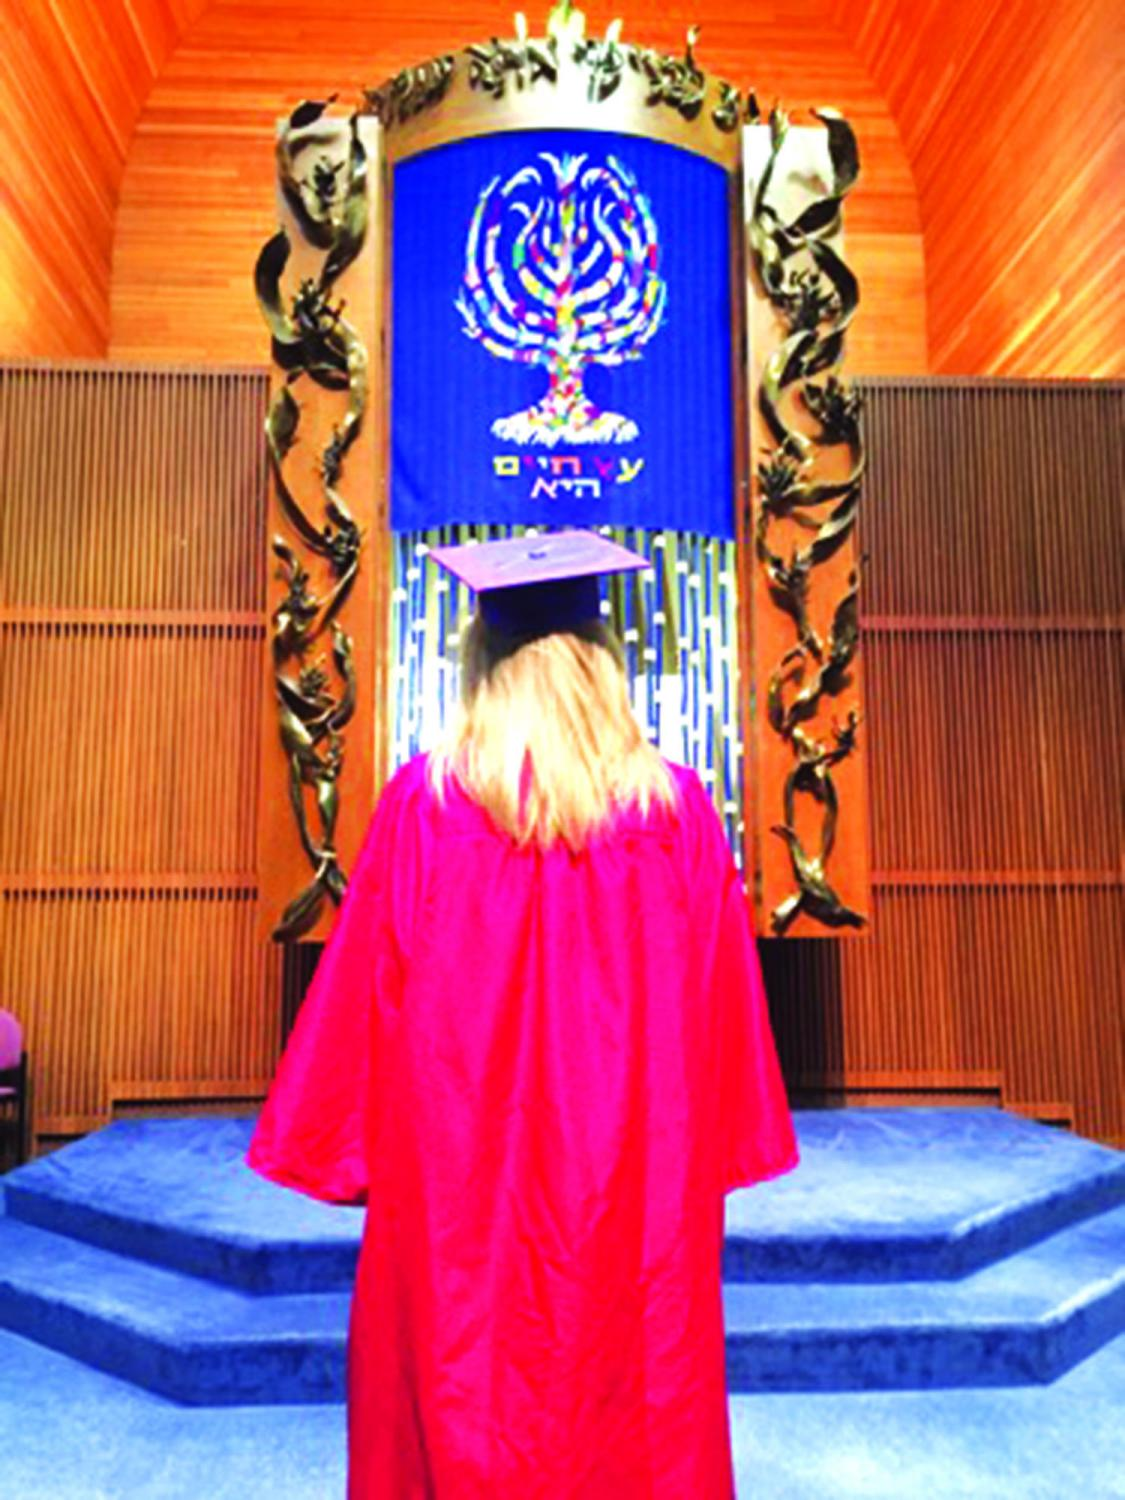 Senior Hannah Maurer stands up for herself and other members of the Jewish community after Parkway schedules full district graduation on a Jewish holiday.